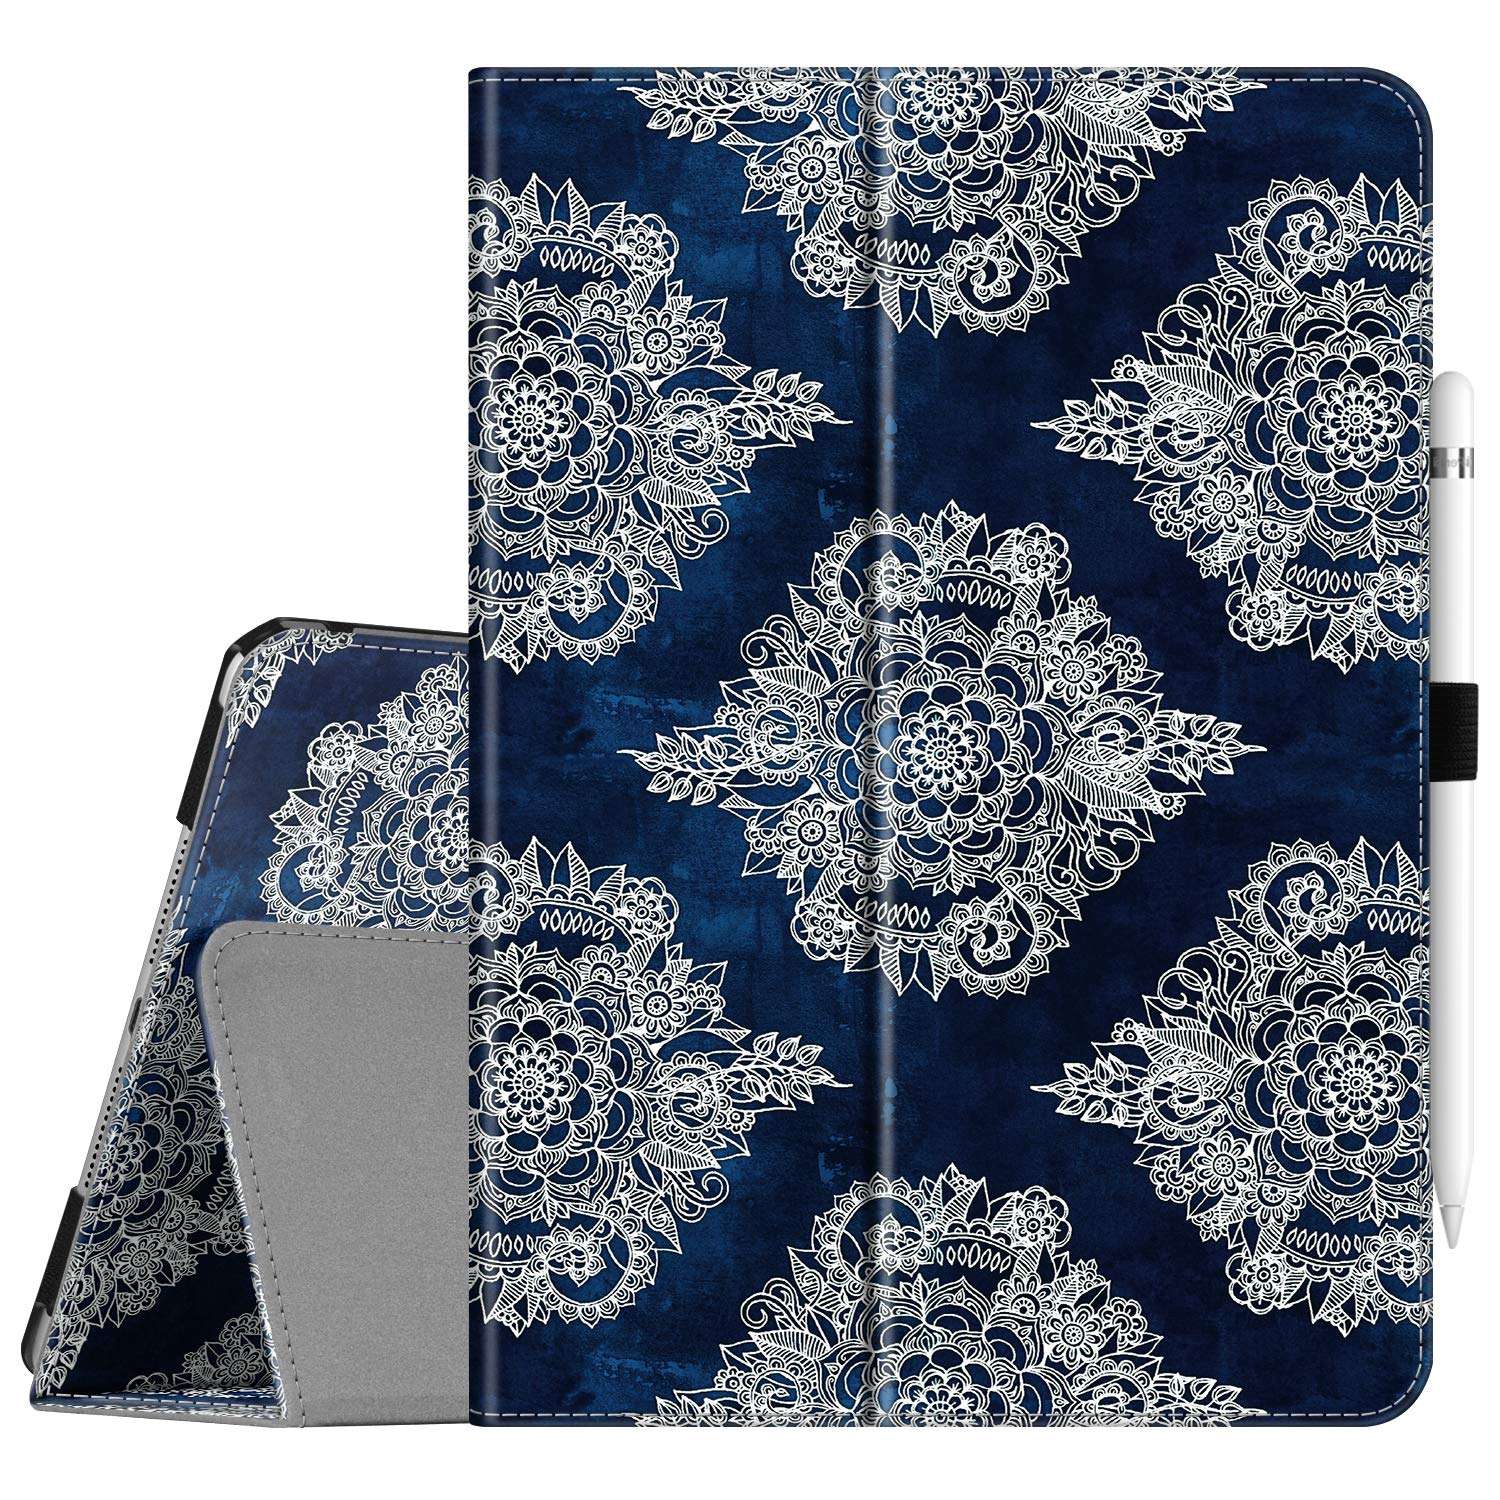 """Fintie Folio Case for New iPad 7th Generation 10.2 Inch 2019 - [Corner Protection] Premium Vegan Leather Smart Stand Back Cover with Pencil Holder, Auto Sleep/Wake for iPad 10.2"""", Indigo Dreams"""